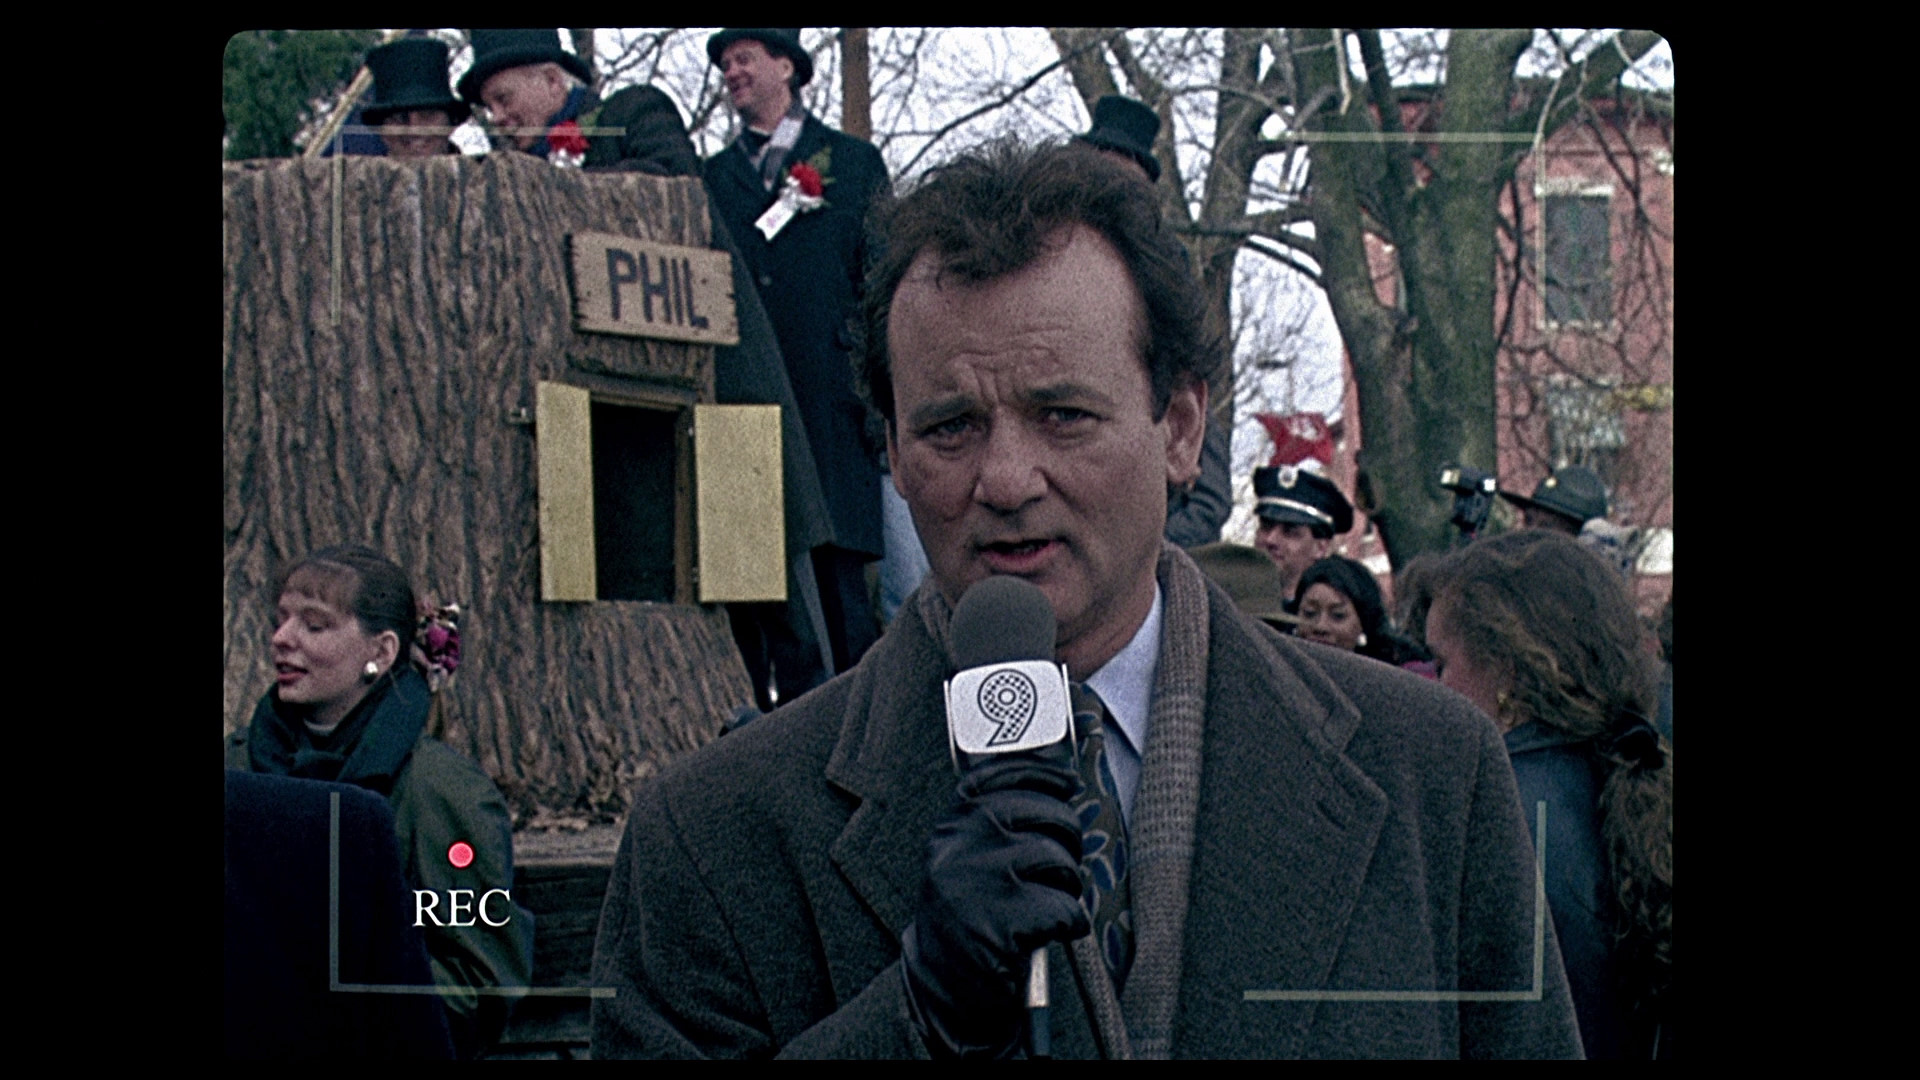 https://thisismylawn.files.wordpress.com/2011/02/groundhog-day-phil-connors.jpg